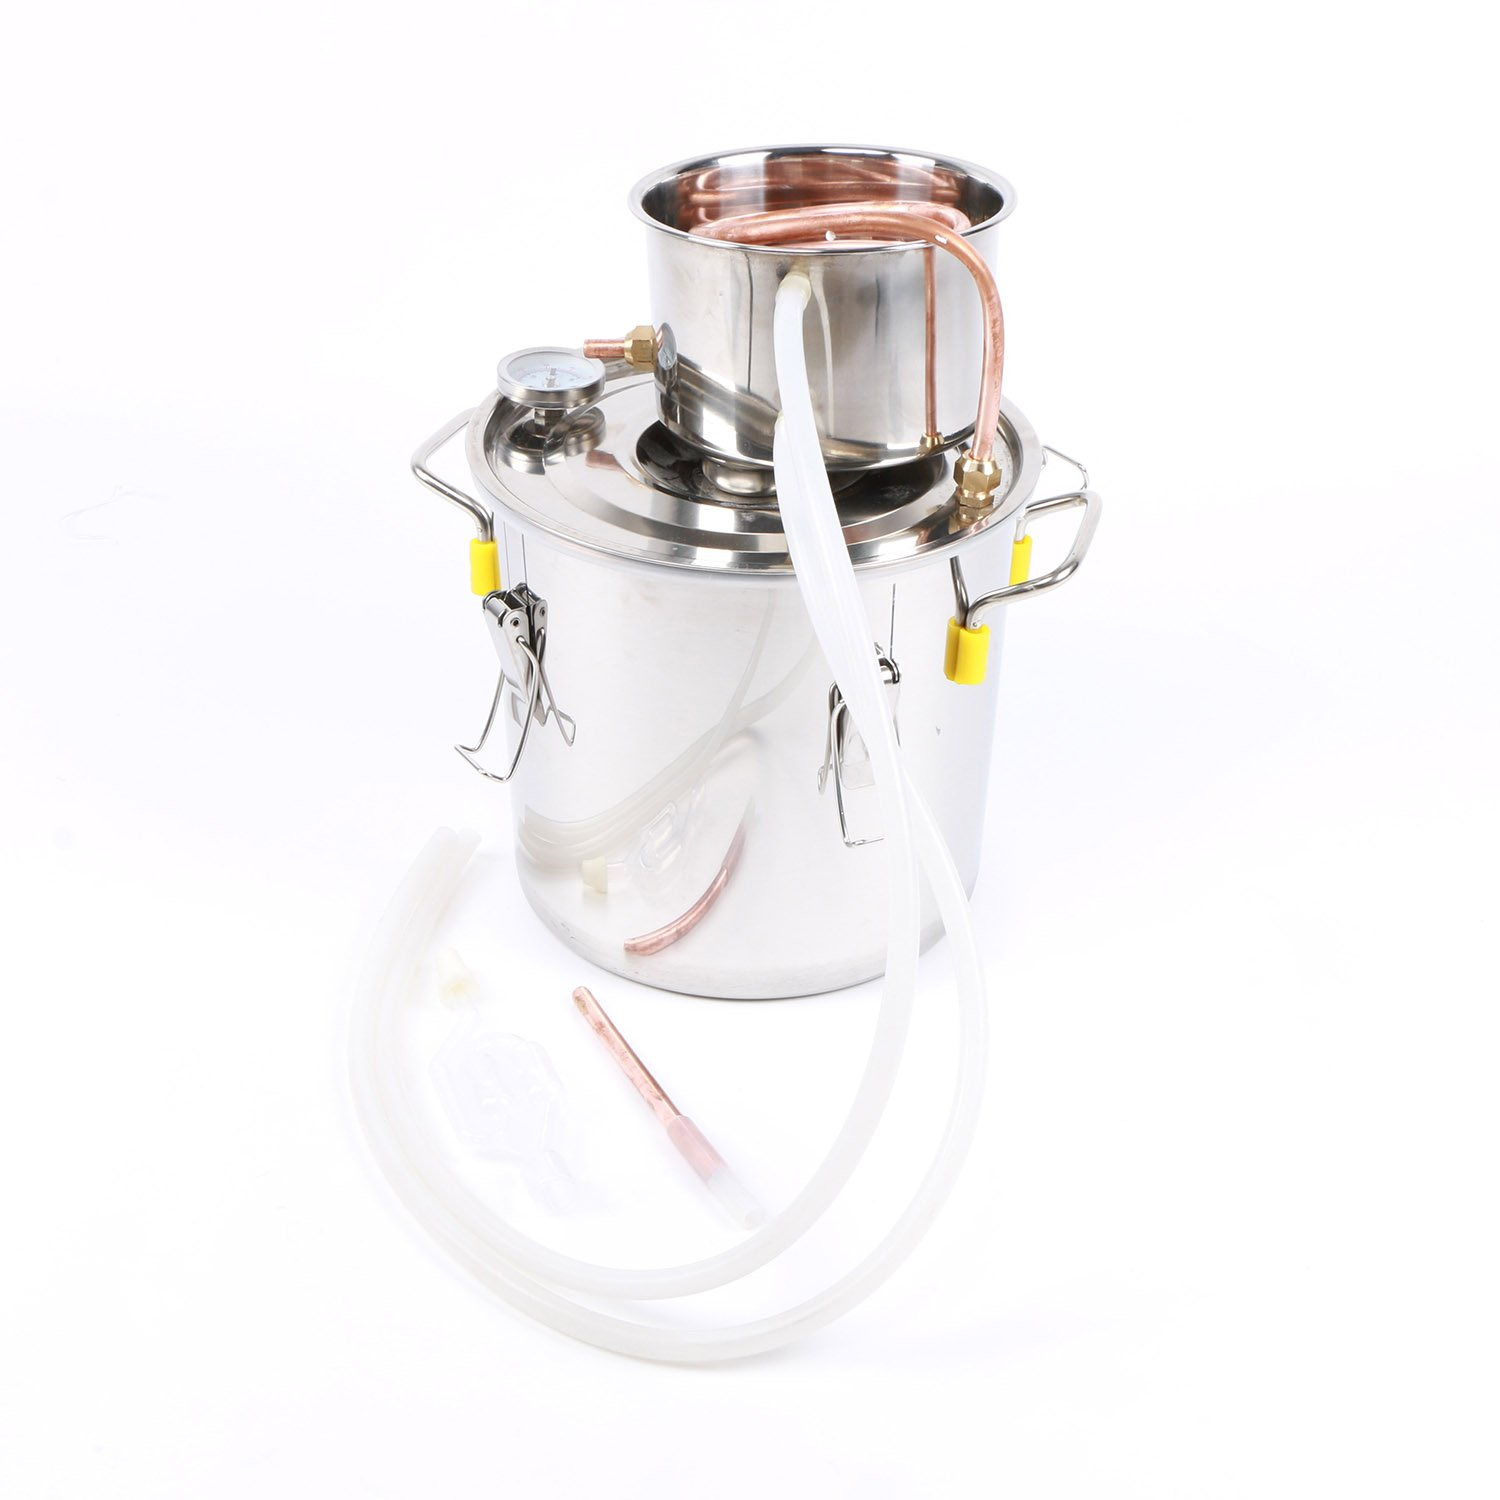 Home Distilling Kit- 10L Still, Make Distilled Spirits at Home, Moonshine, Water, and Whiskey Distilling Equipment, a U.S. Solid Product